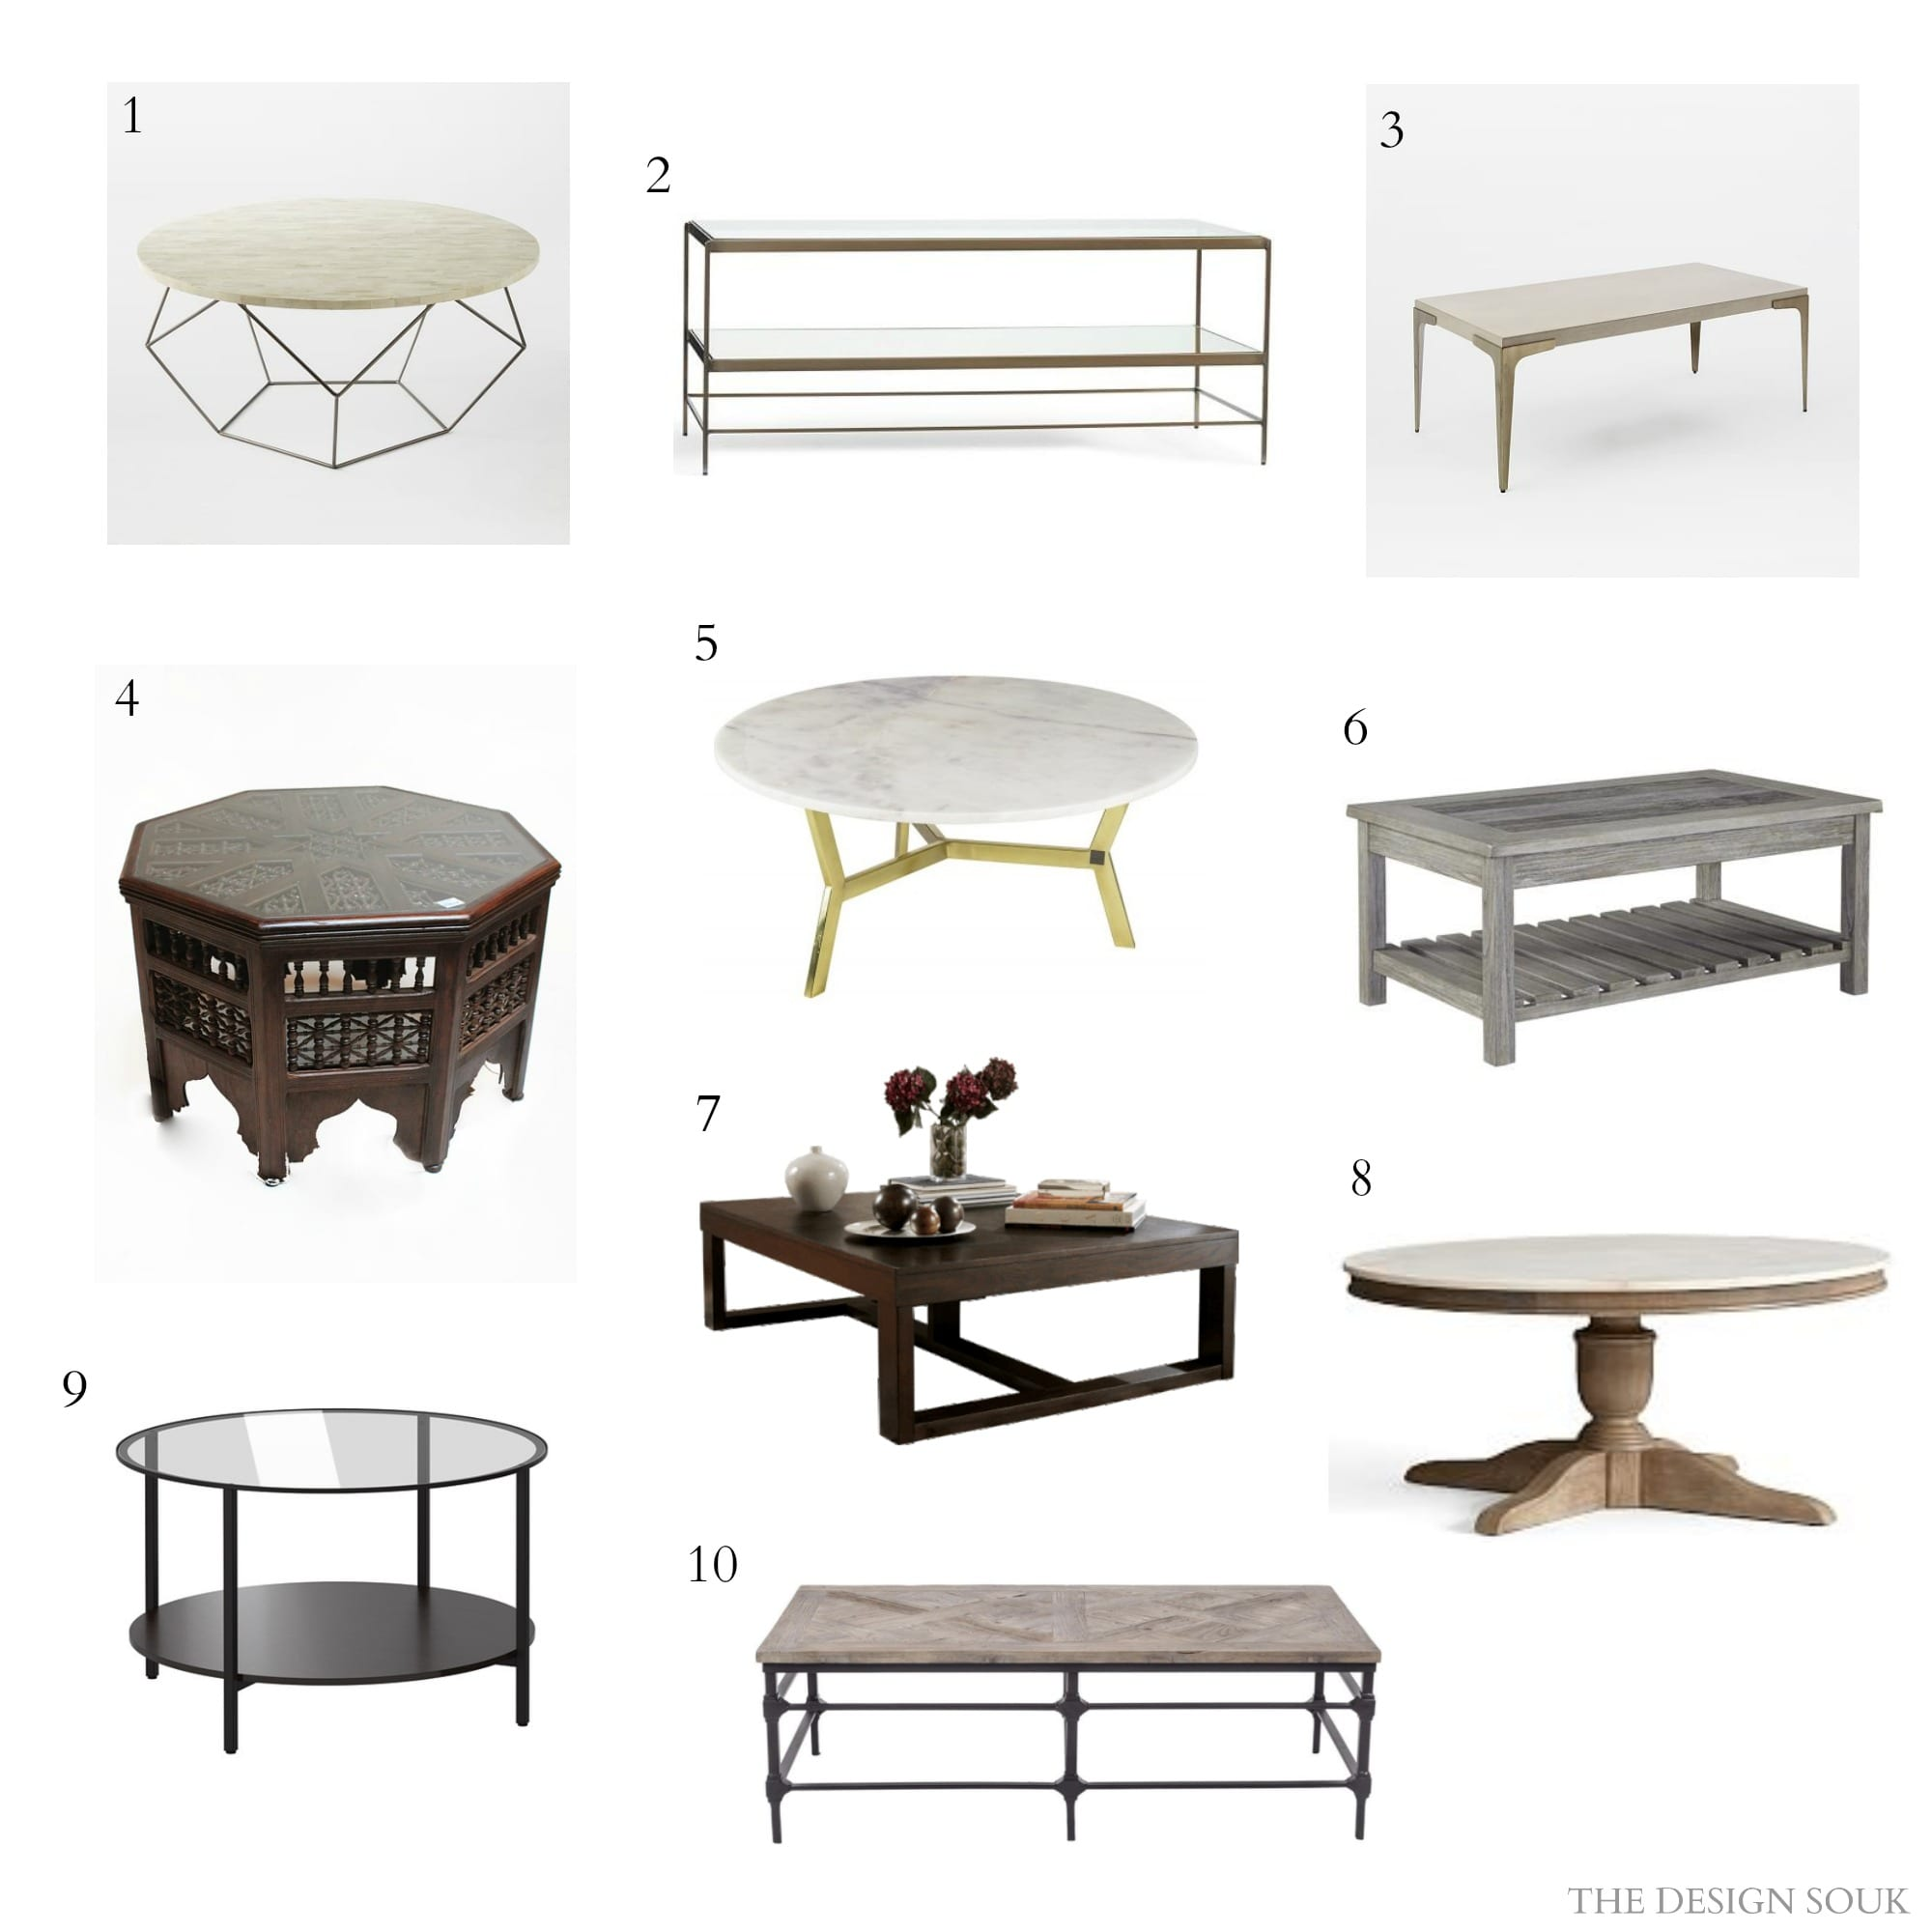 Fabulous Coffee Tables The Design Souk An Interiors Styling - Pottery barn leona coffee table